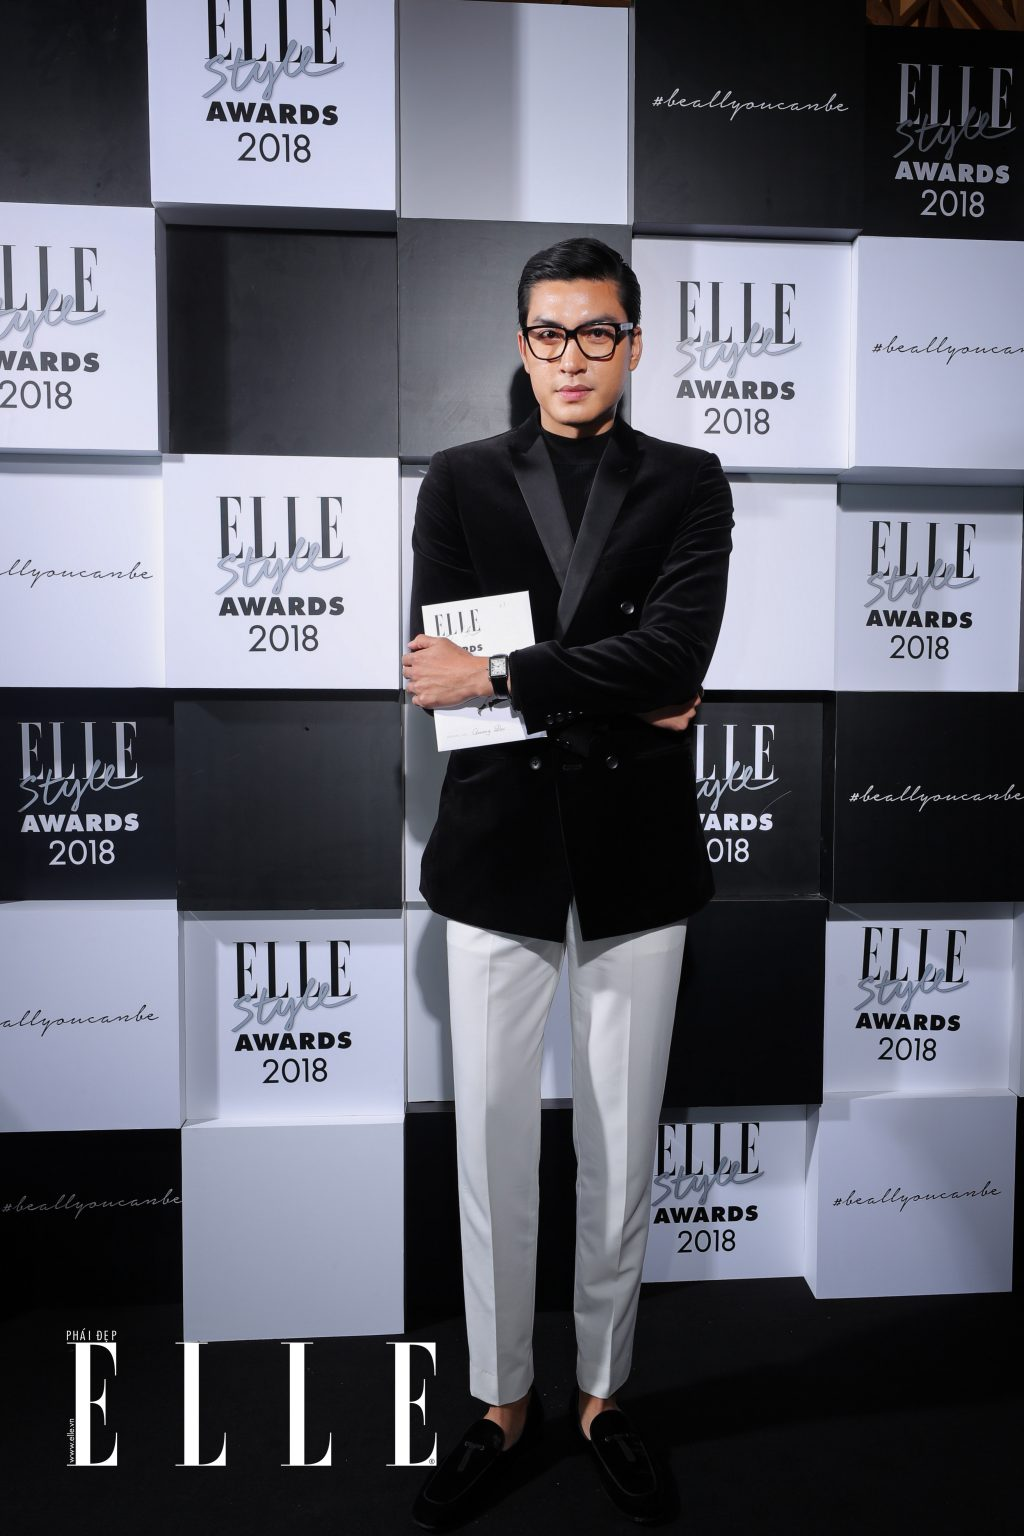 elle style awards 2018 quang đại